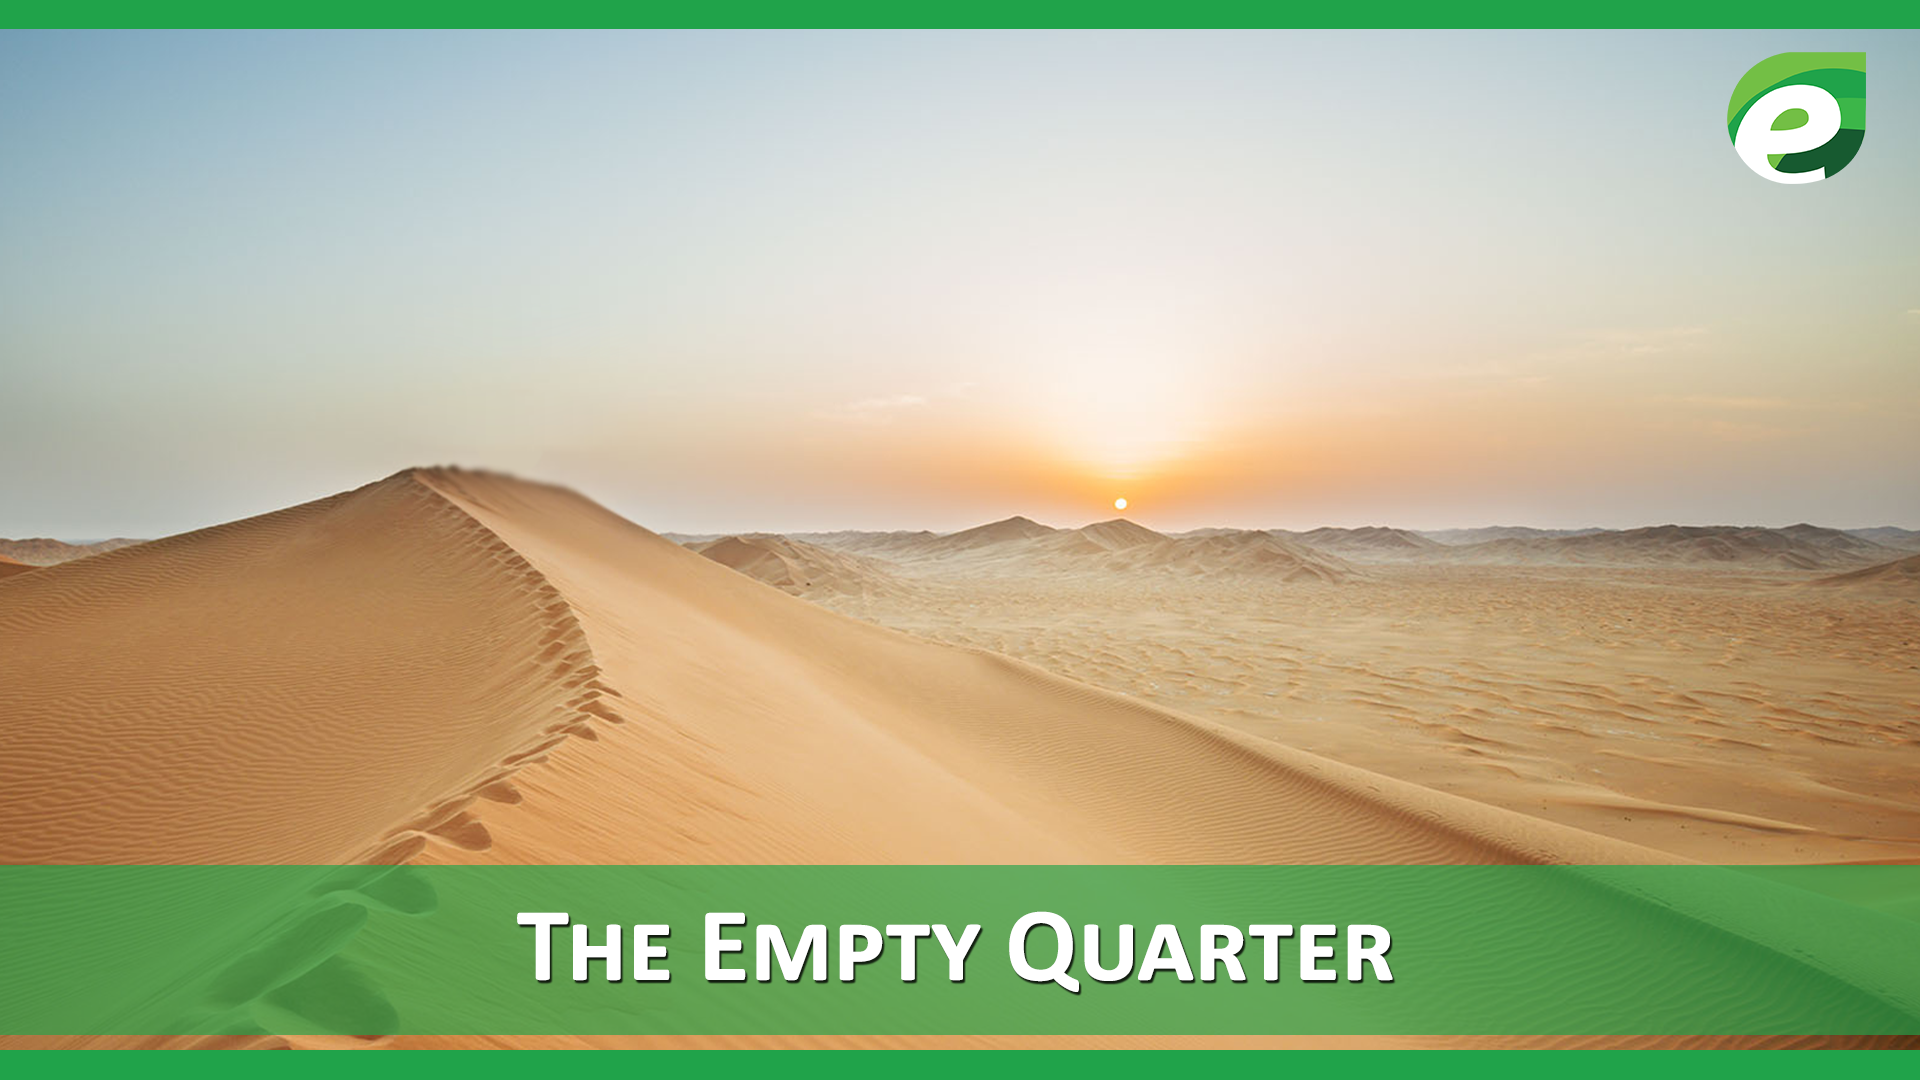 Hottest Deserts of the World- The empty quarter